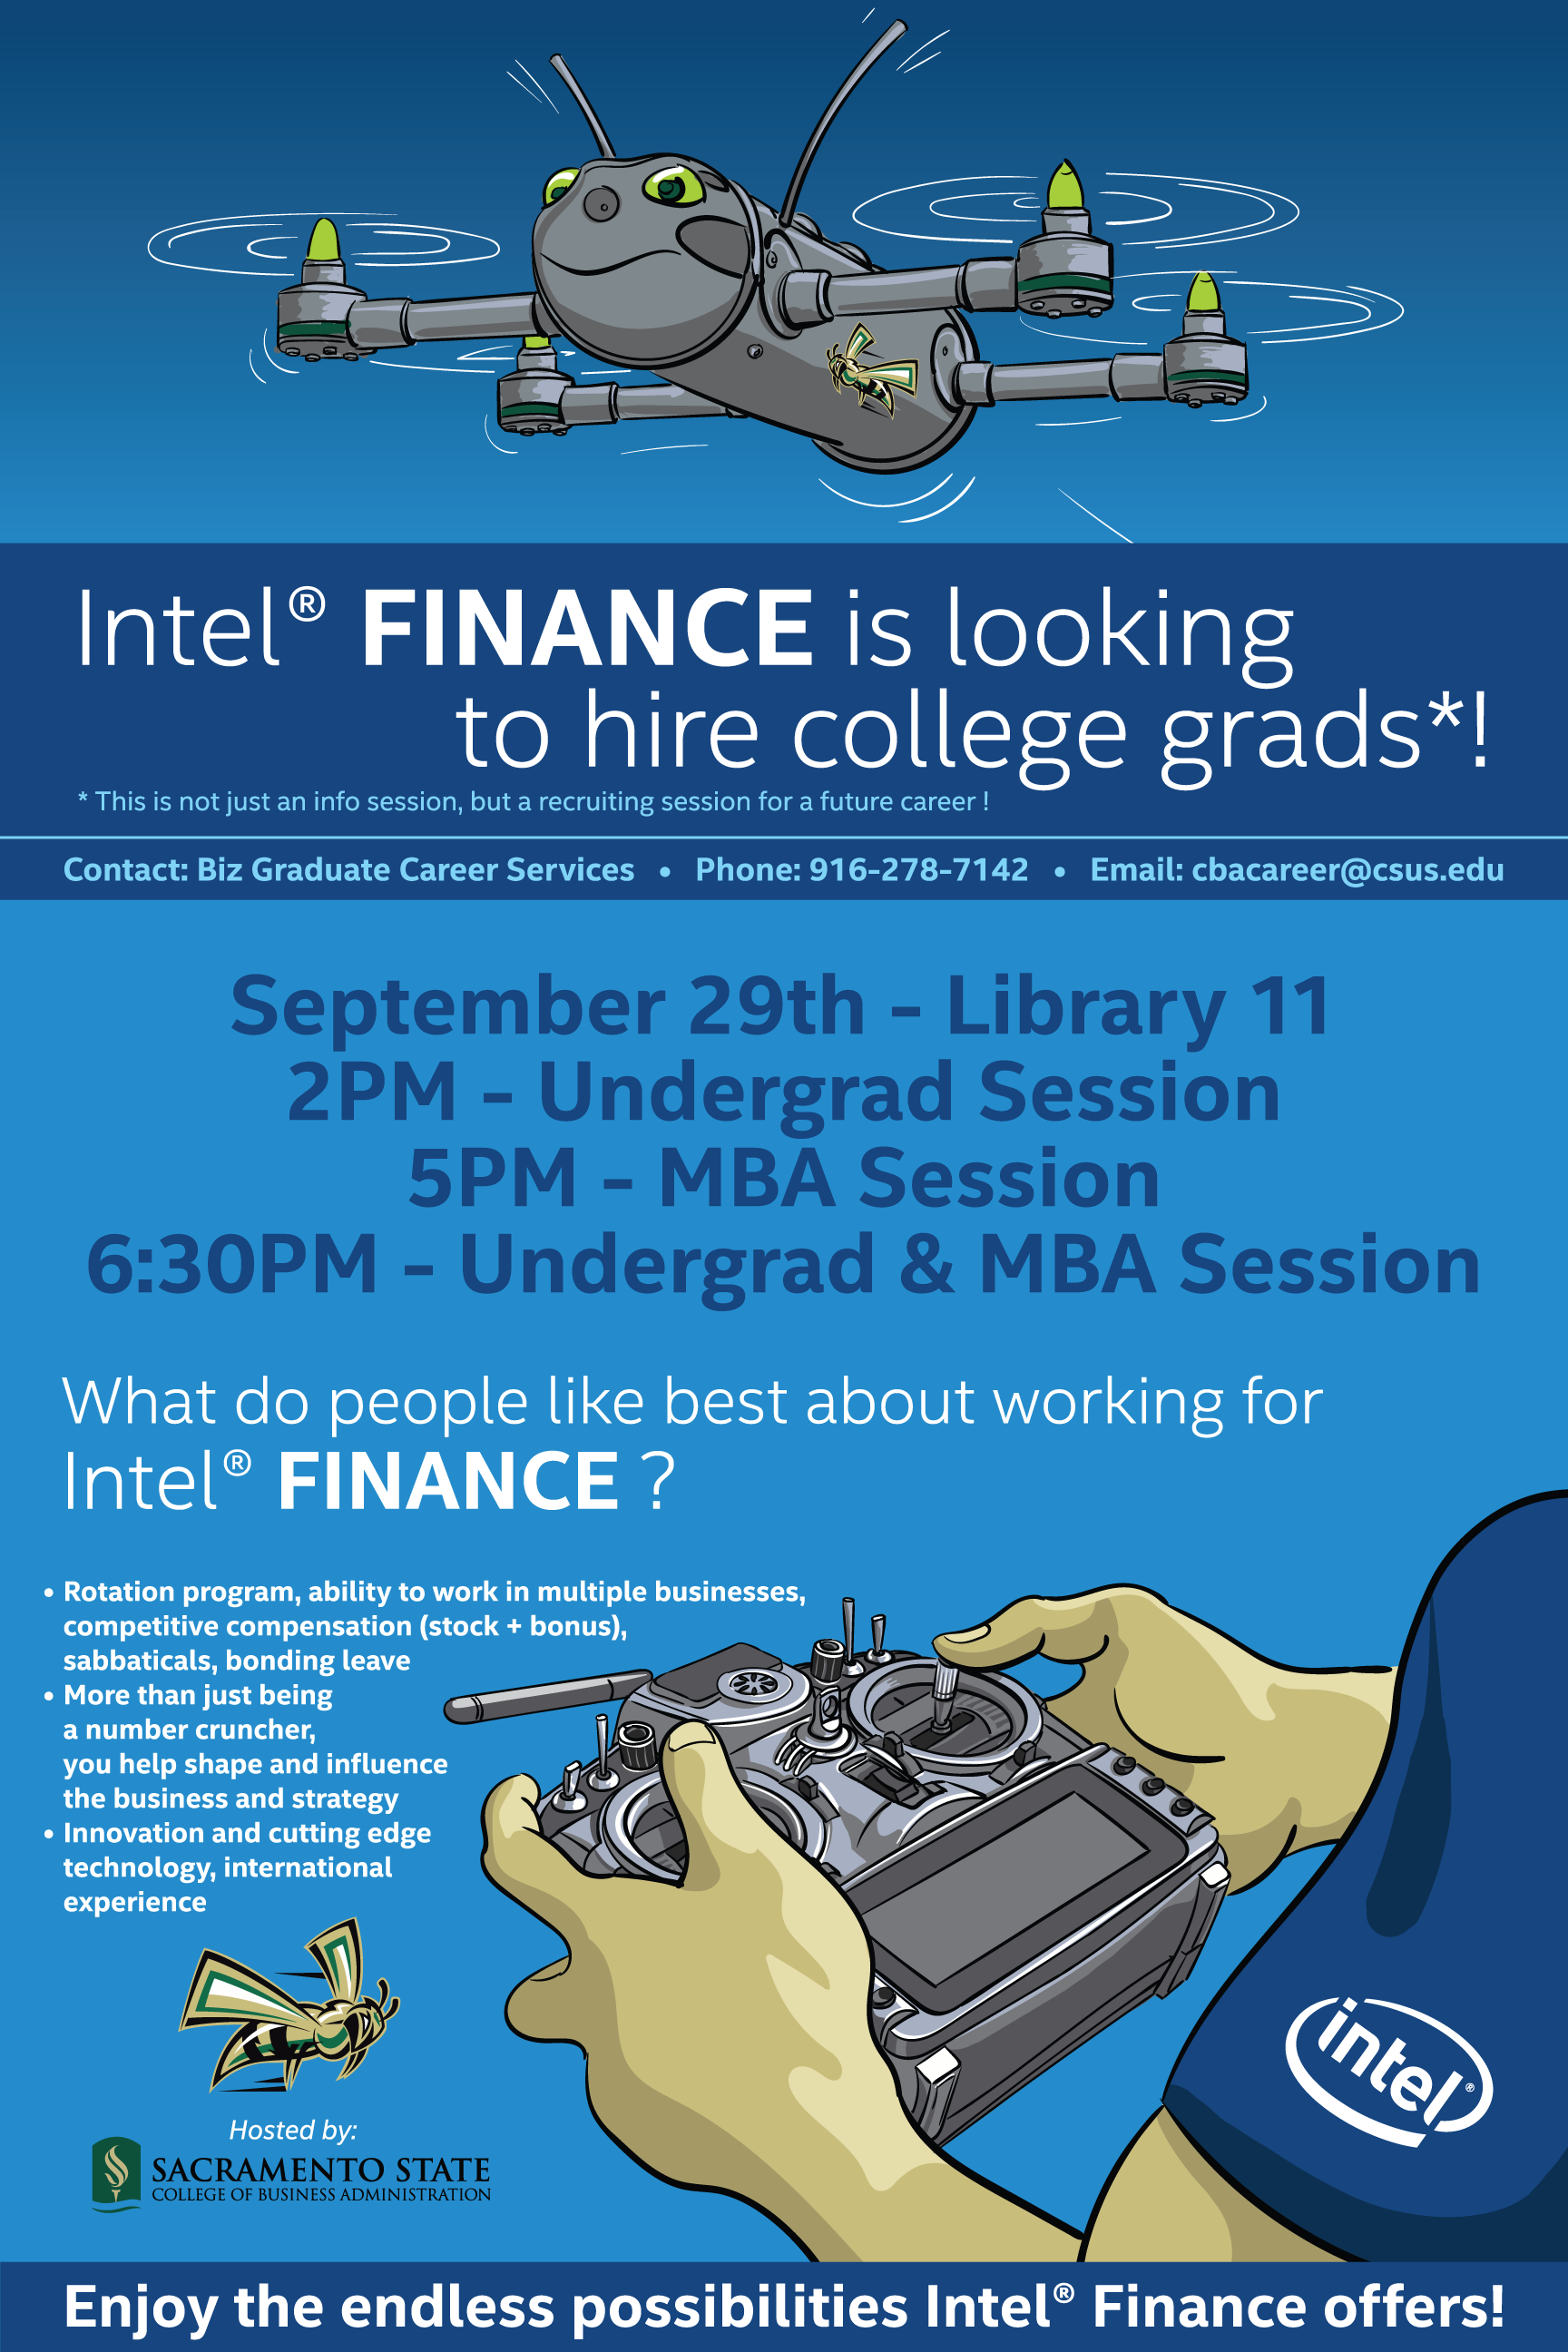 CSUS_Intel_Finance_Poster_DRONE_FINAL.png